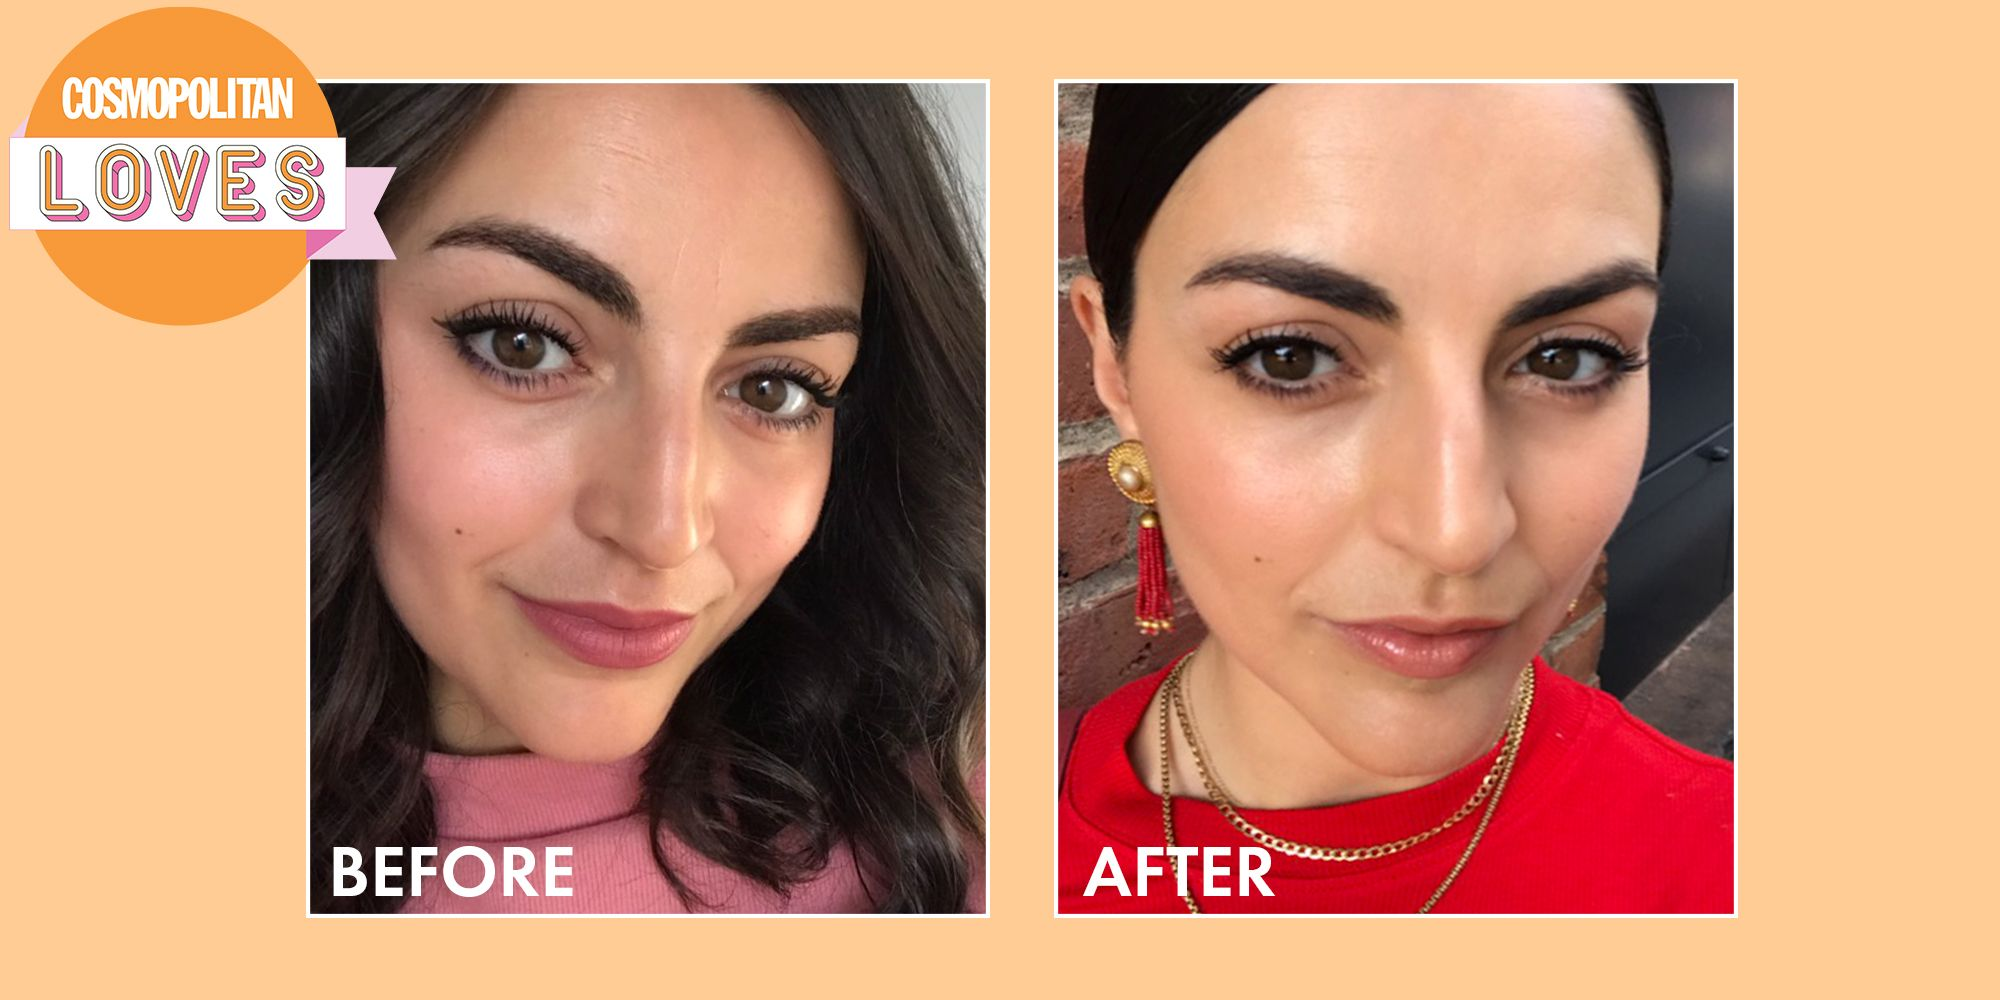 This $21 Face Sticker Stopped Me From Getting Botox